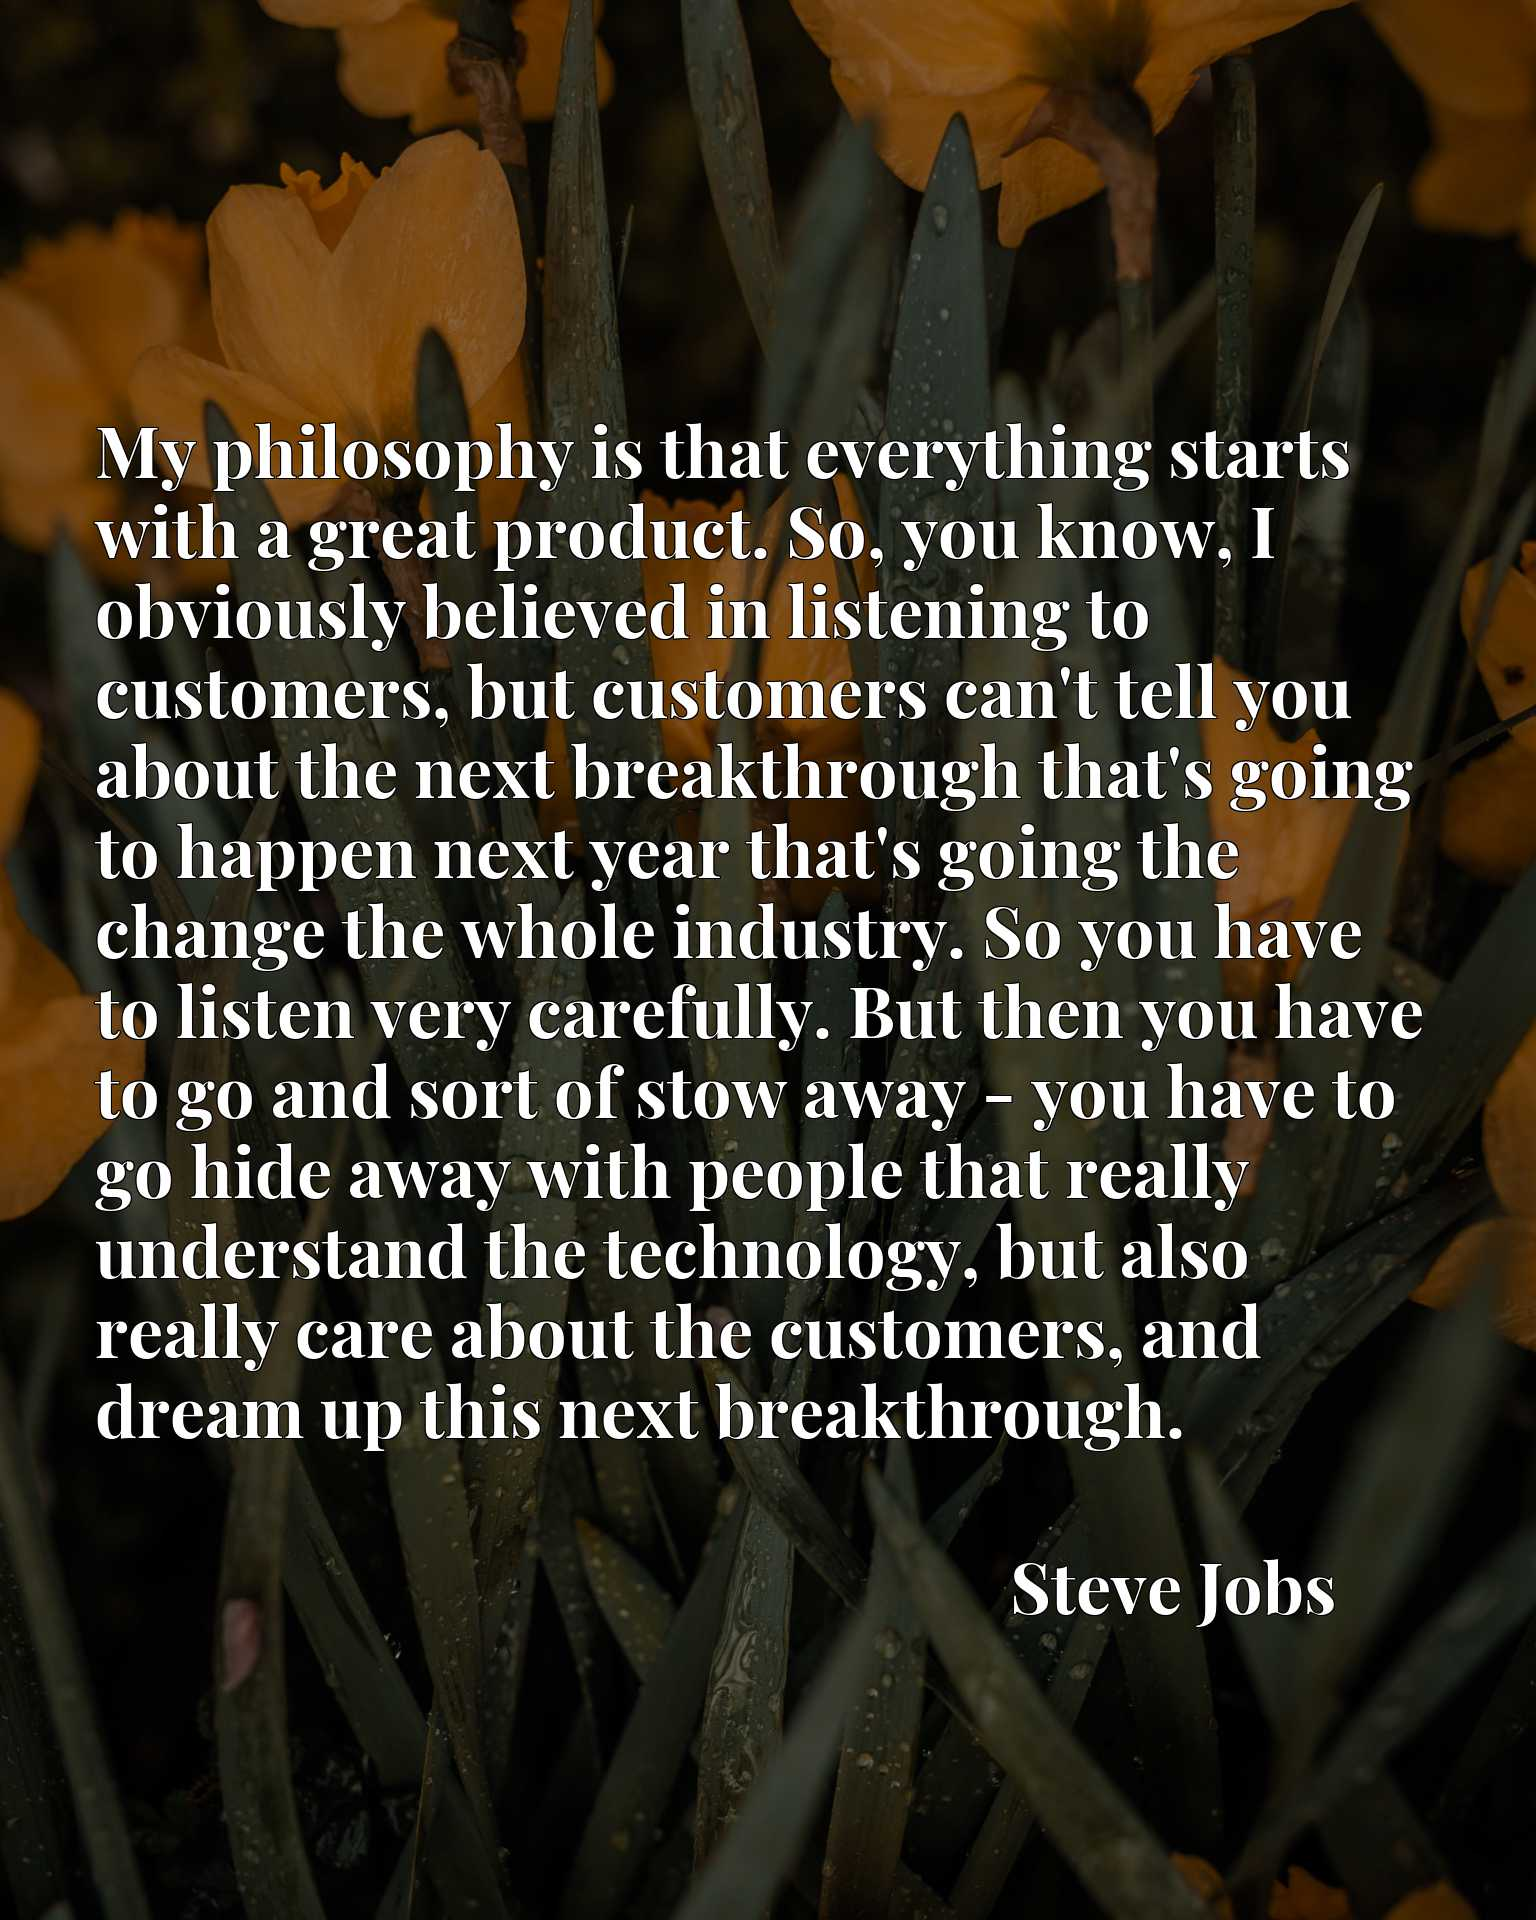 My philosophy is that everything starts with a great product. So, you know, I obviously believed in listening to customers, but customers can't tell you about the next breakthrough that's going to happen next year that's going the change the whole industry. So you have to listen very carefully. But then you have to go and sort of stow away - you have to go hide away with people that really understand the technology, but also really care about the customers, and dream up this next breakthrough.